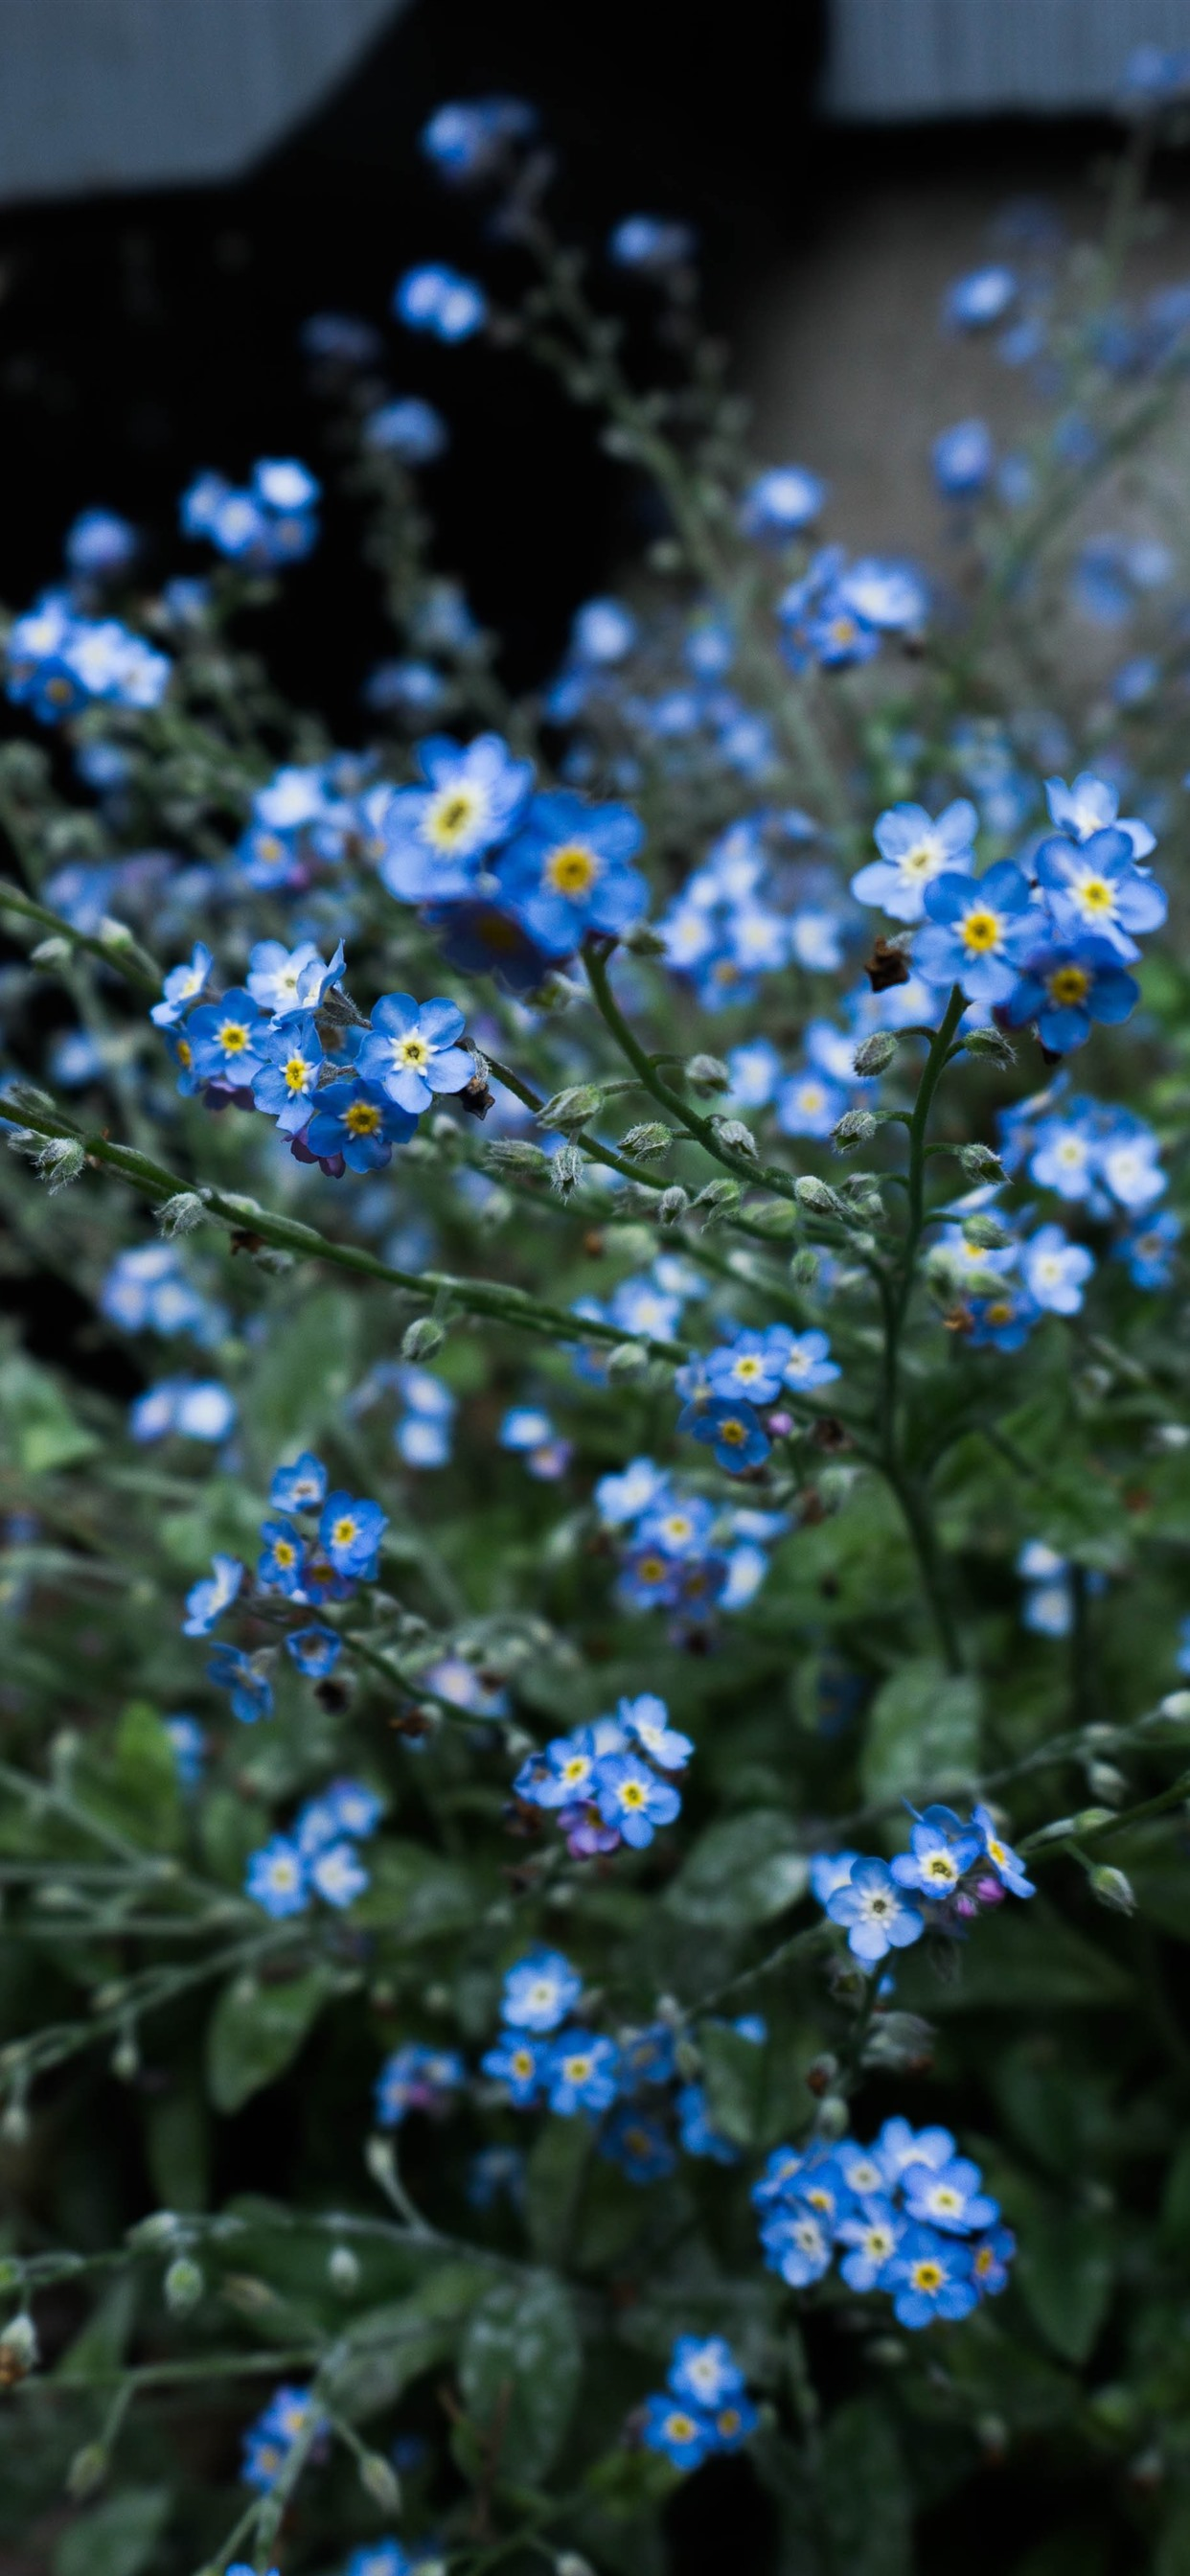 Forget Me Not Blue Little Flowers 1242x2688 Iphone 11 Pro Xs Max Wallpaper Background Picture Image